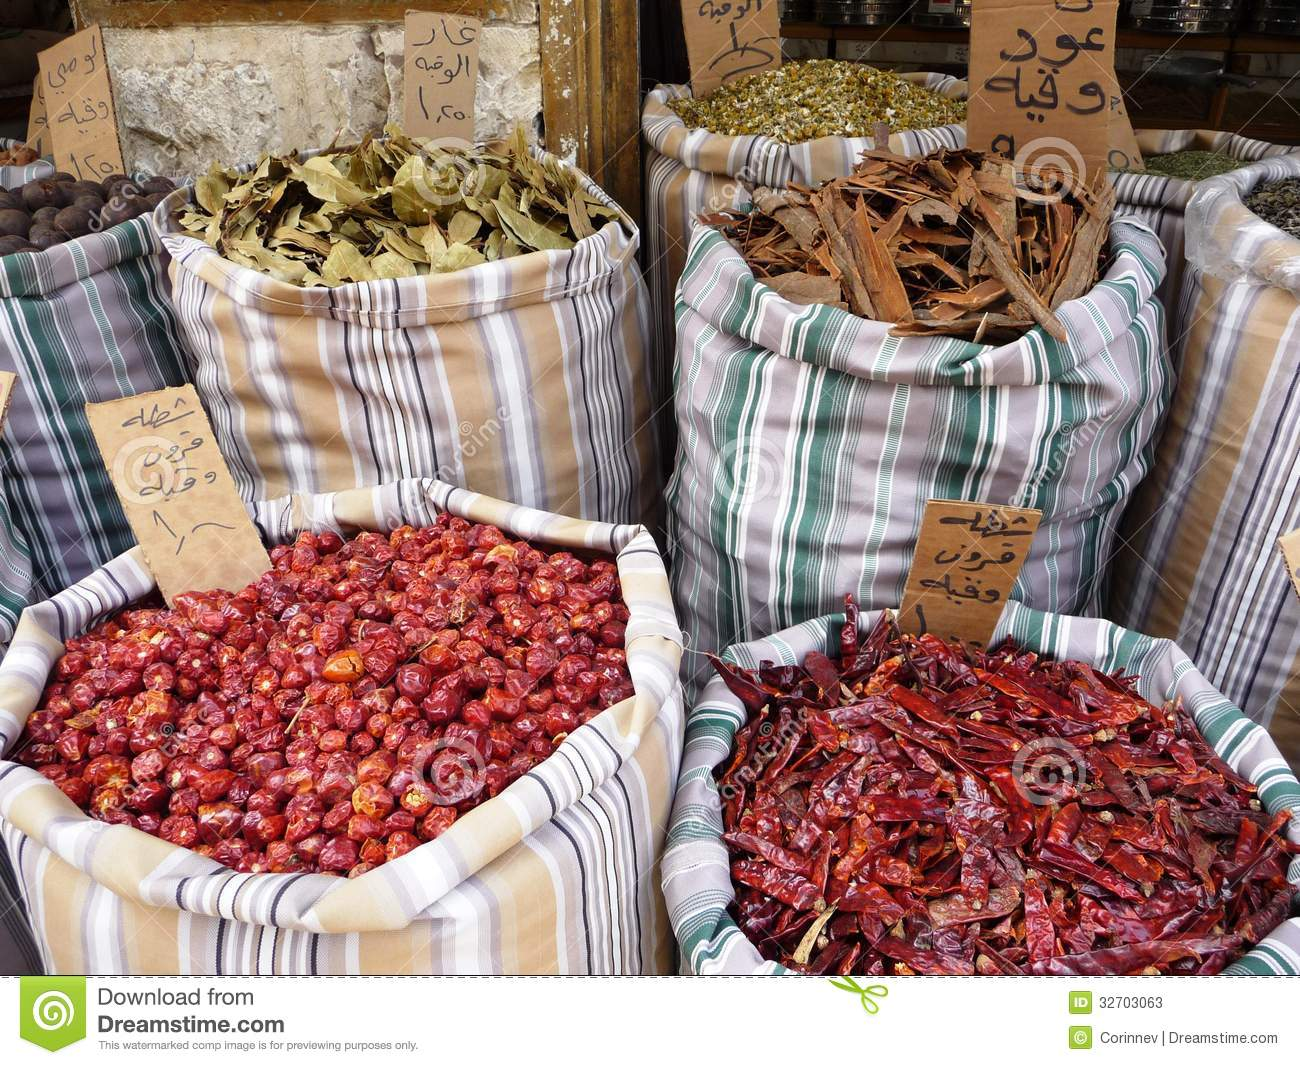 Can't you just imagine how this spice stall smells? Mmmm ...   Middle East Spice Market